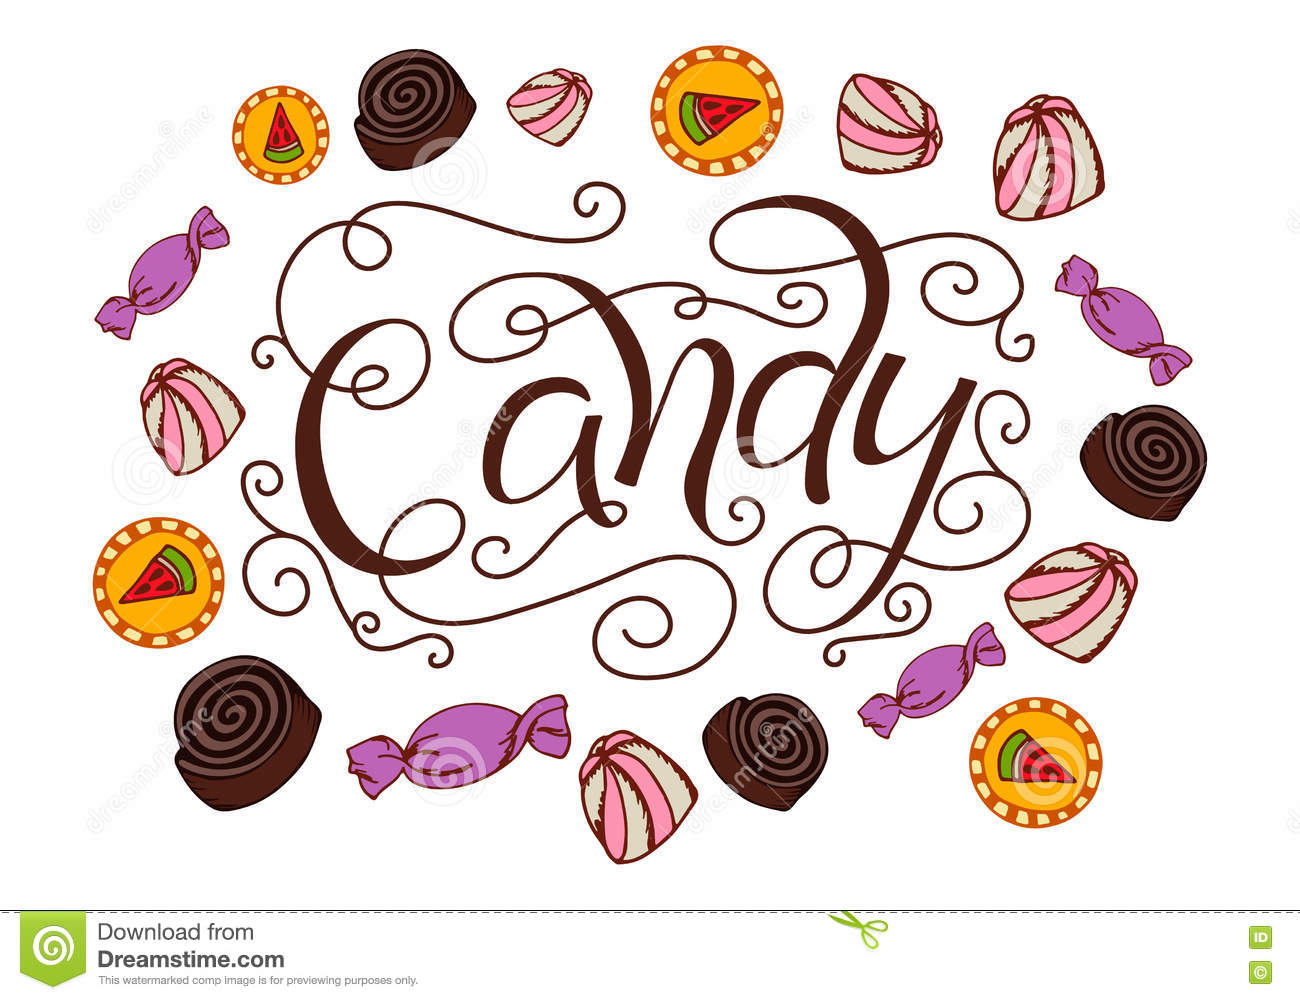 Candy Template. free printable small peppermint candy ...